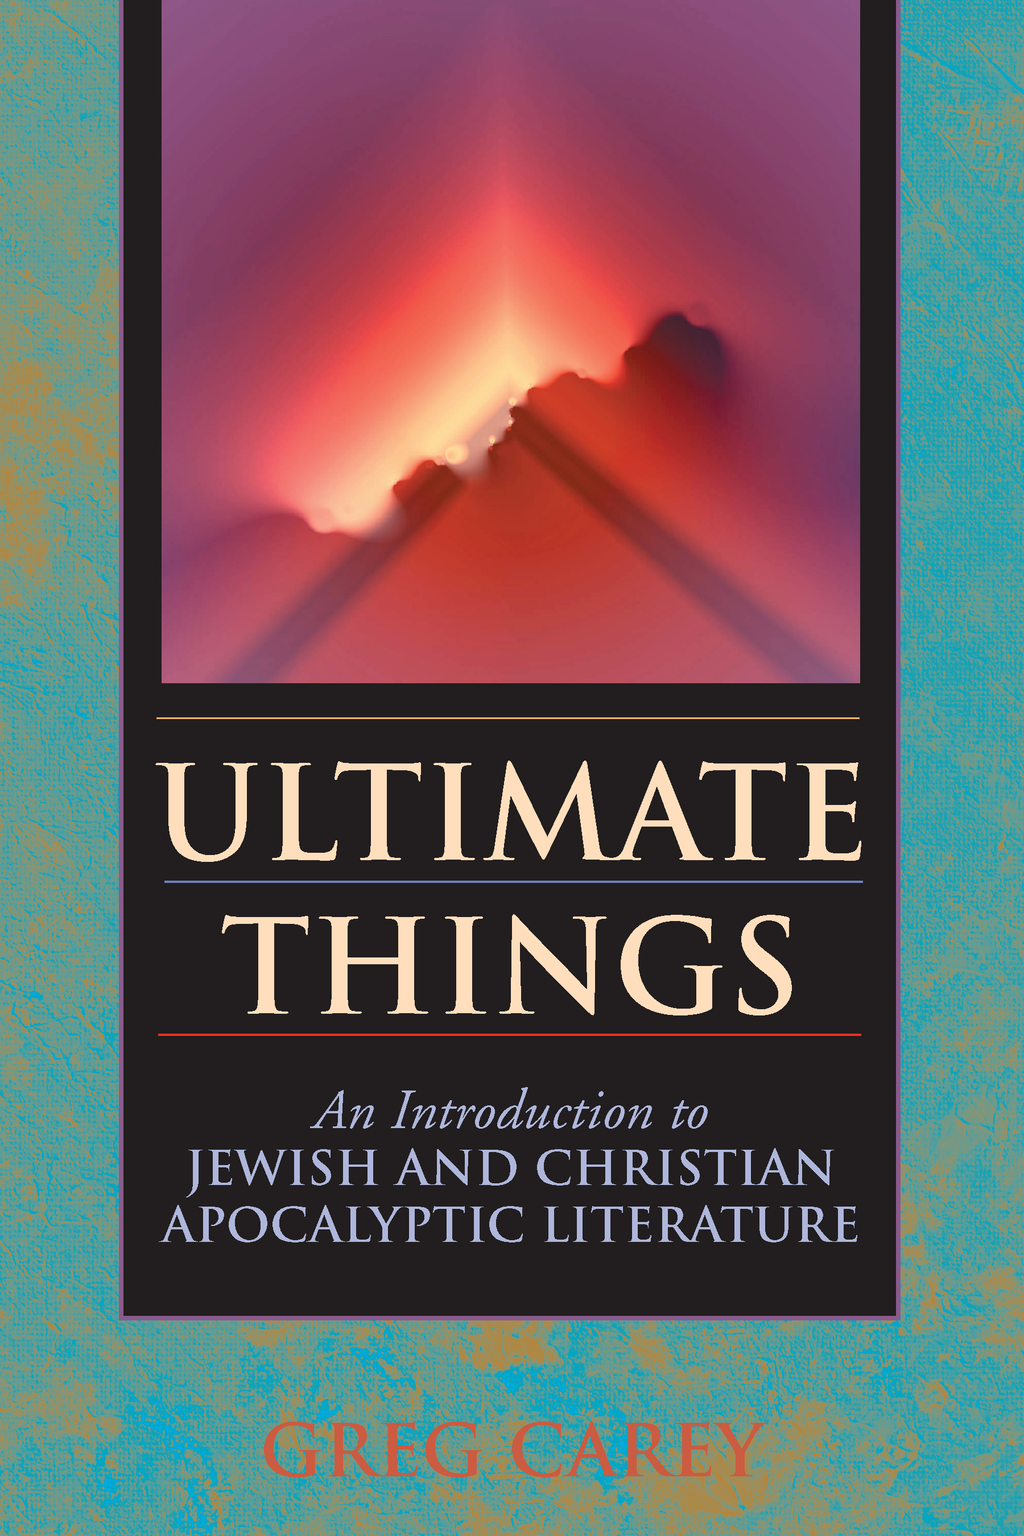 Ultimate Things: An Introduction to Jewish and Christian Apocalyptic Literature